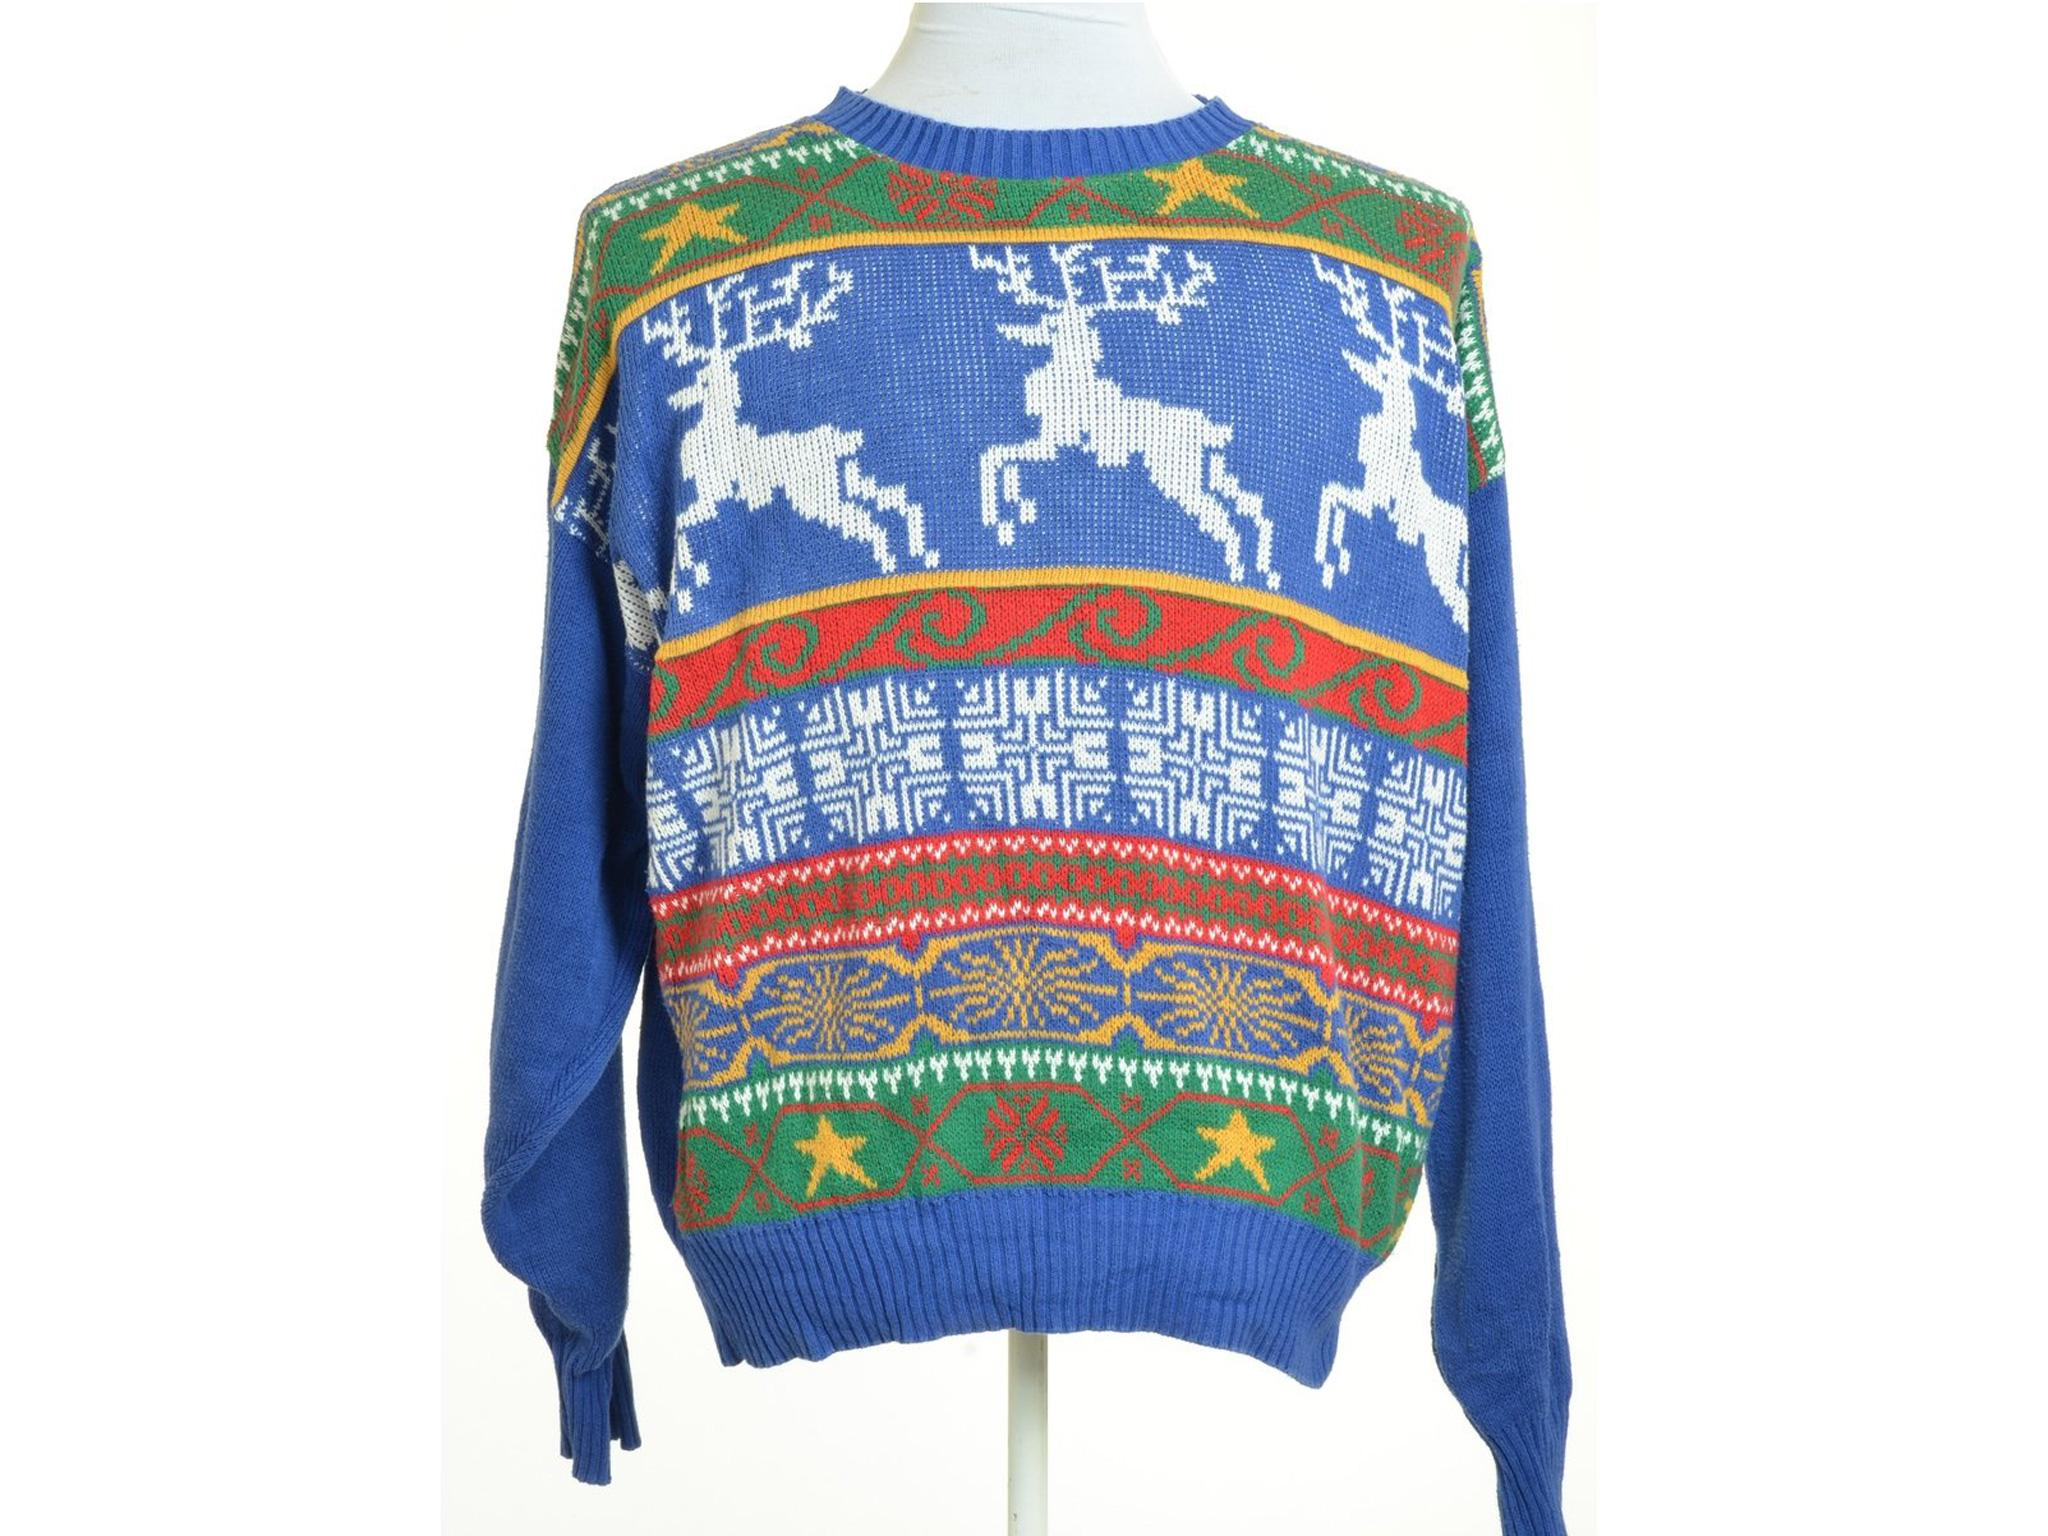 8 best men\'s Christmas jumpers   The Independent